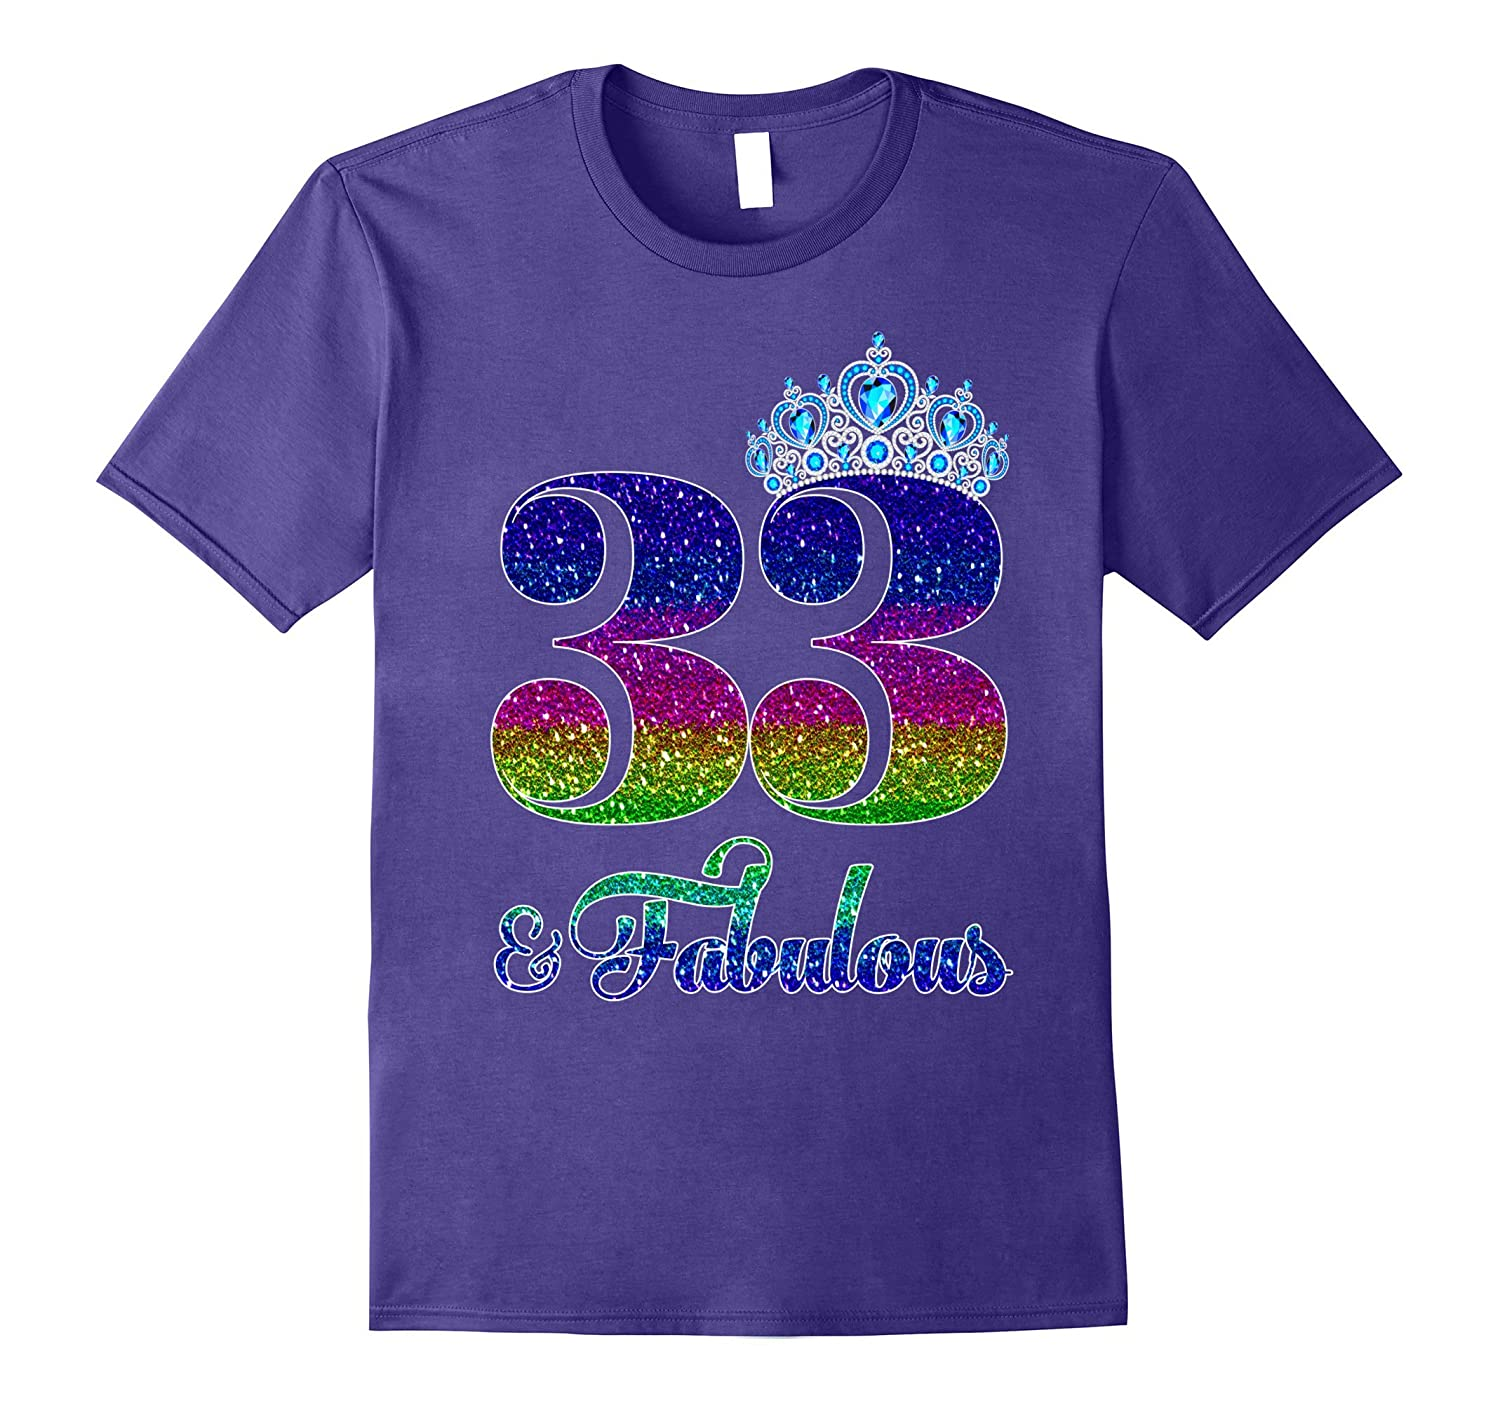 33 And Fabulous Queen 33rd Birthday TShirt-FL